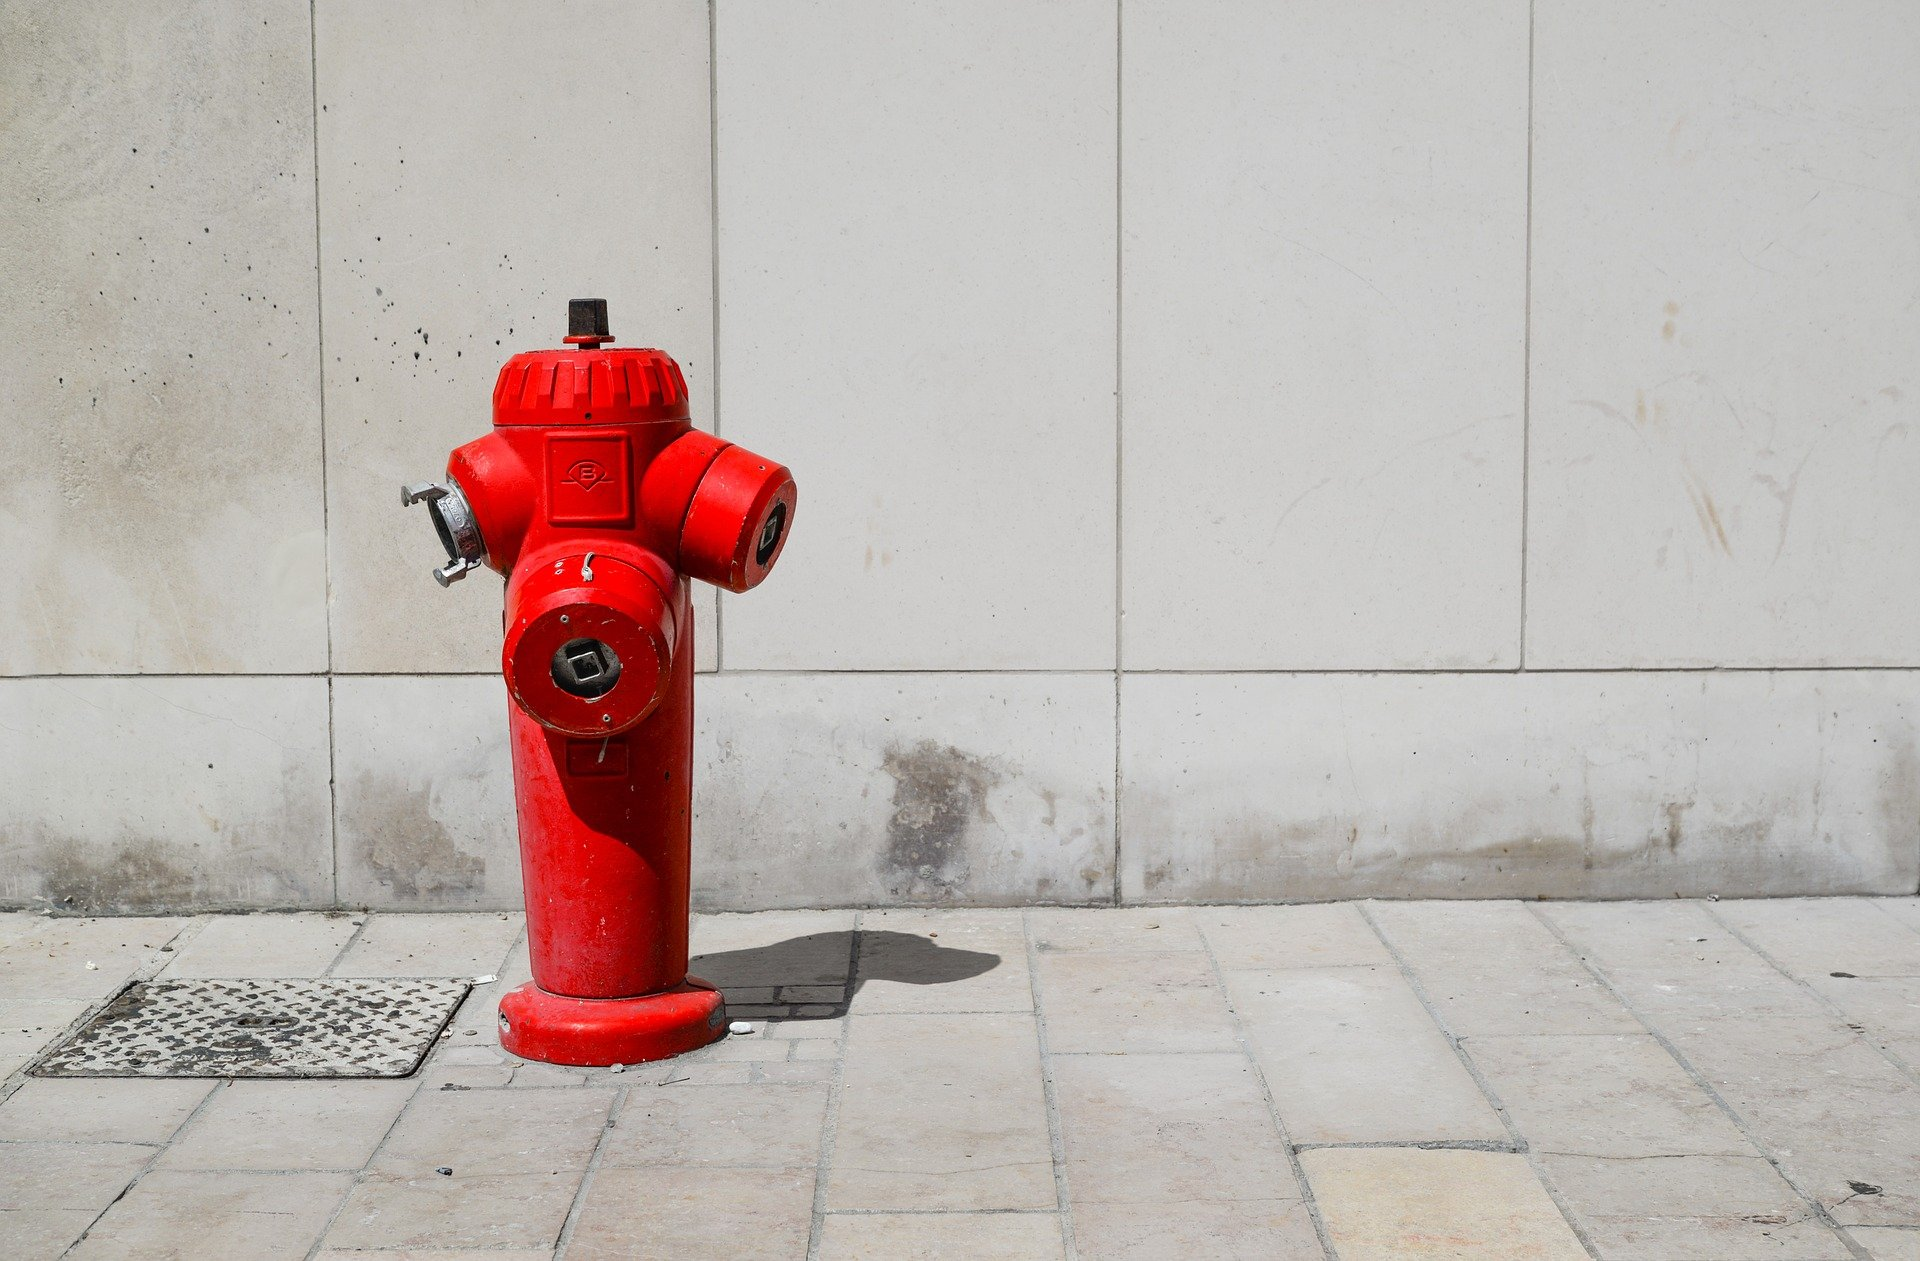 red fire hydrant on sidewalk for fire safety